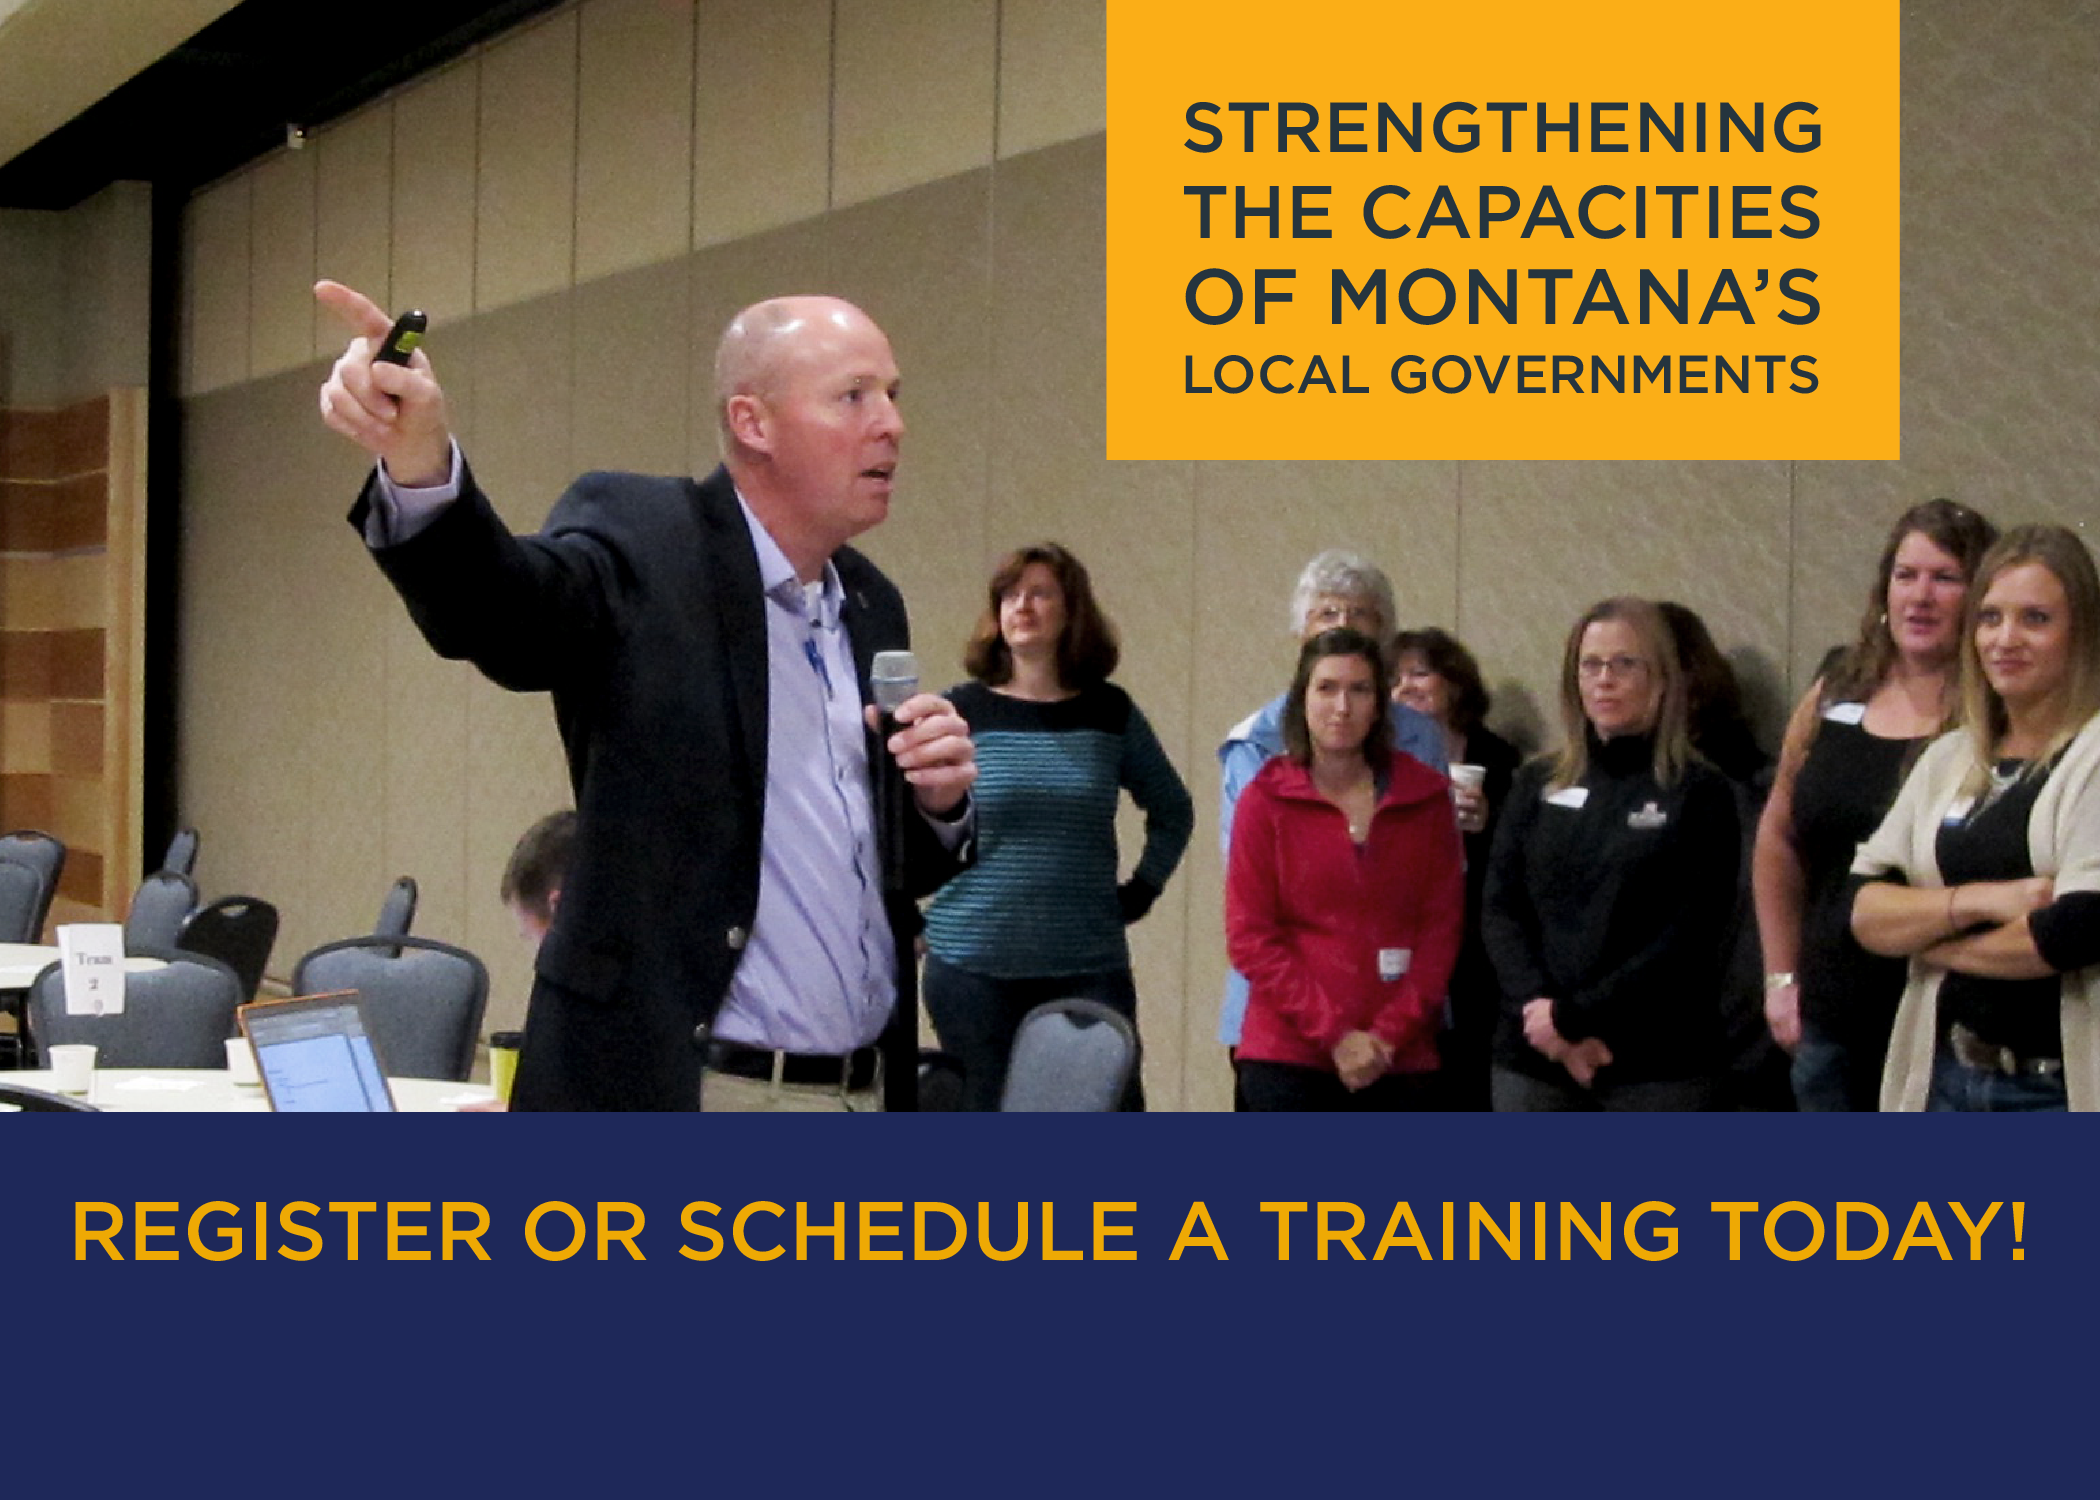 Strengthening the capacities of Montana's local governmentsRegister or schedule a training today!